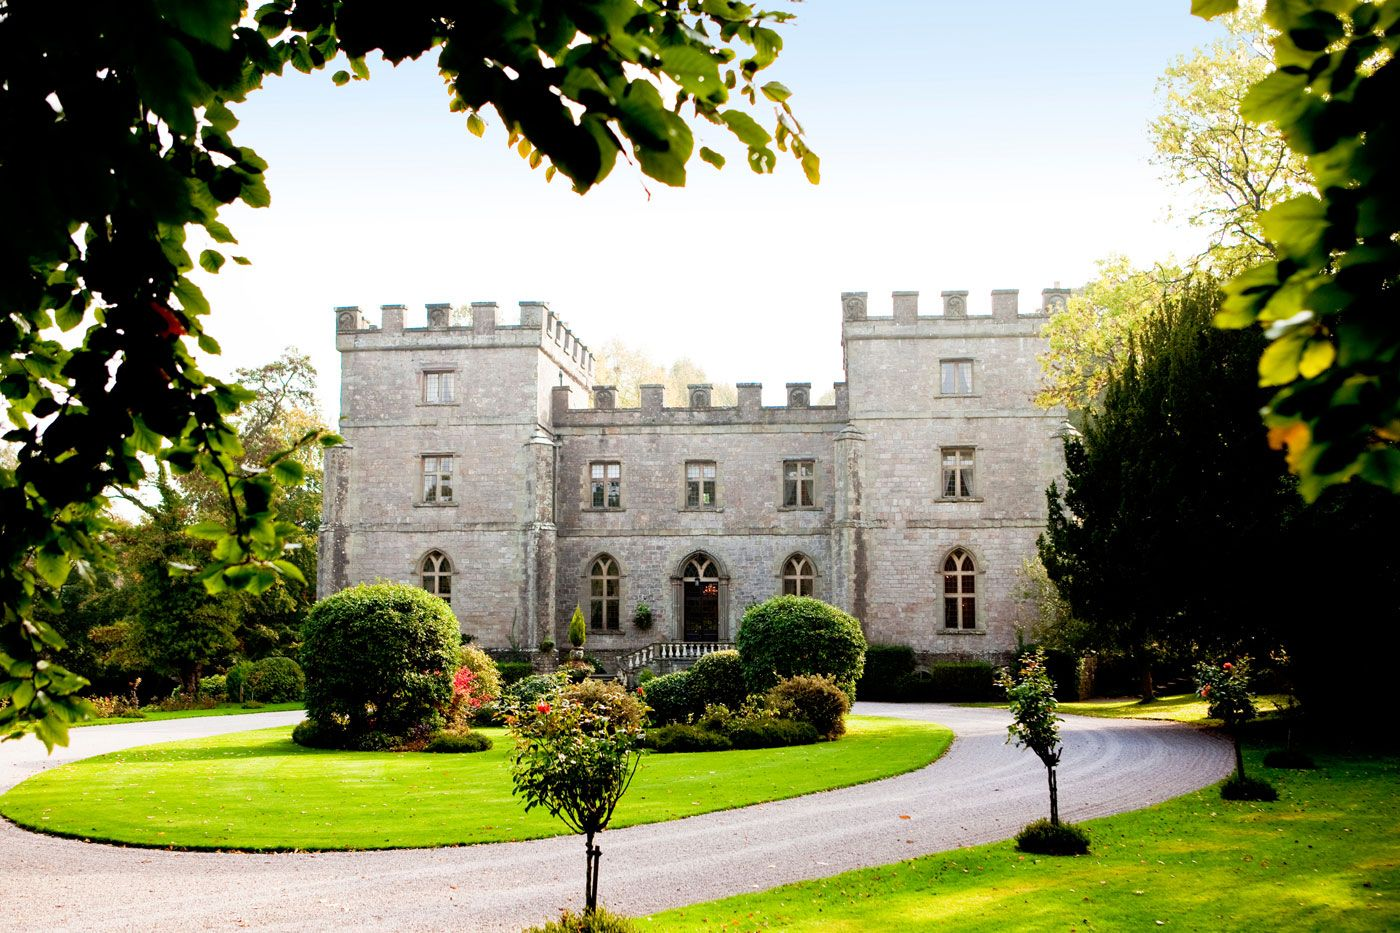 Fantastic Venue I got married there!!!!! Clearwell Castle